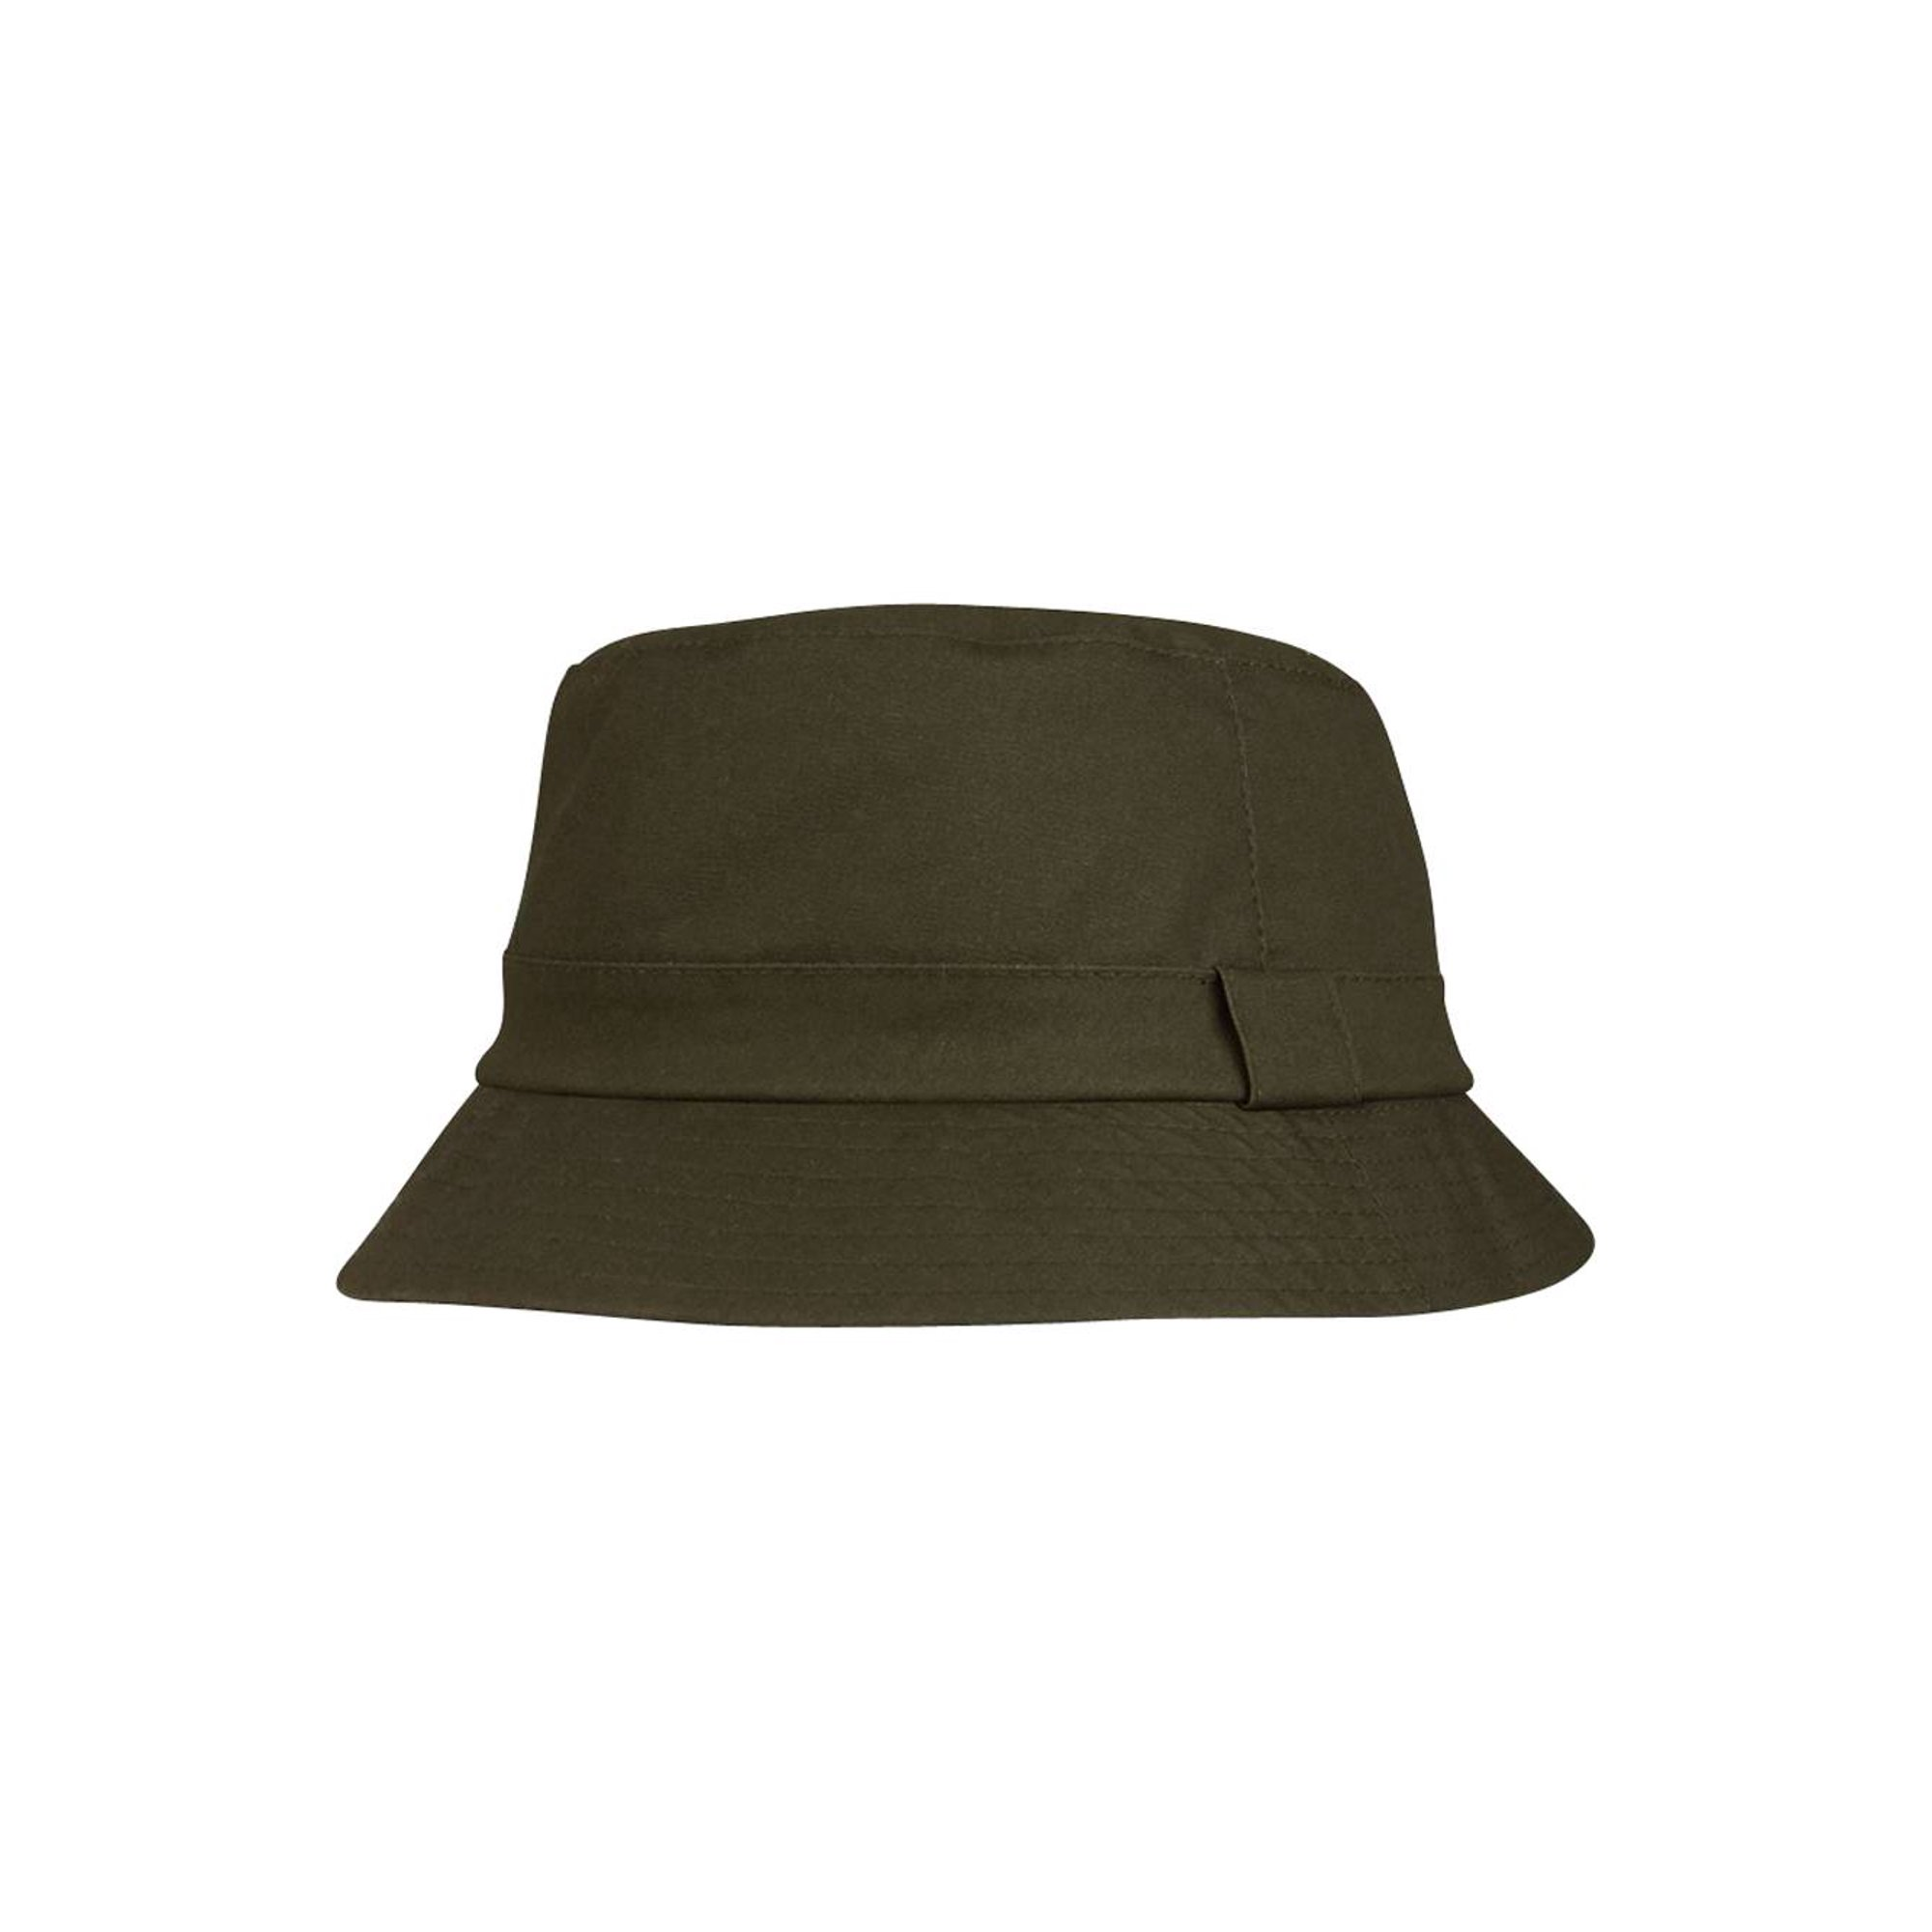 ceef39eec27dc1 Juniper Unisex Waxed Cotton Canvas Bucket Hat-J9702 - Olive - Large |  Walmart Canada